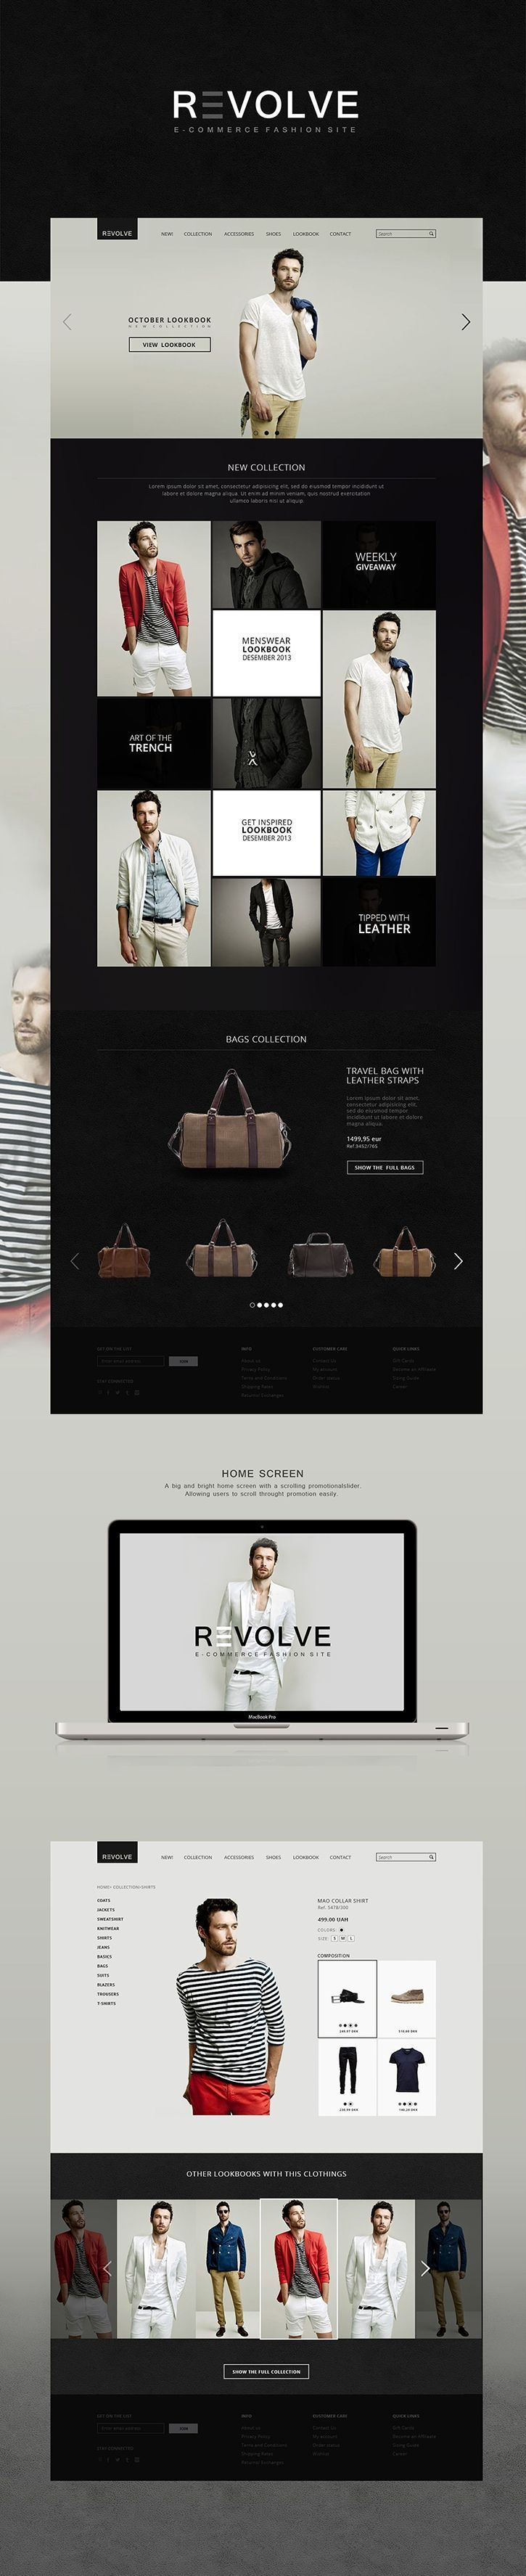 Web design inspiration | #905